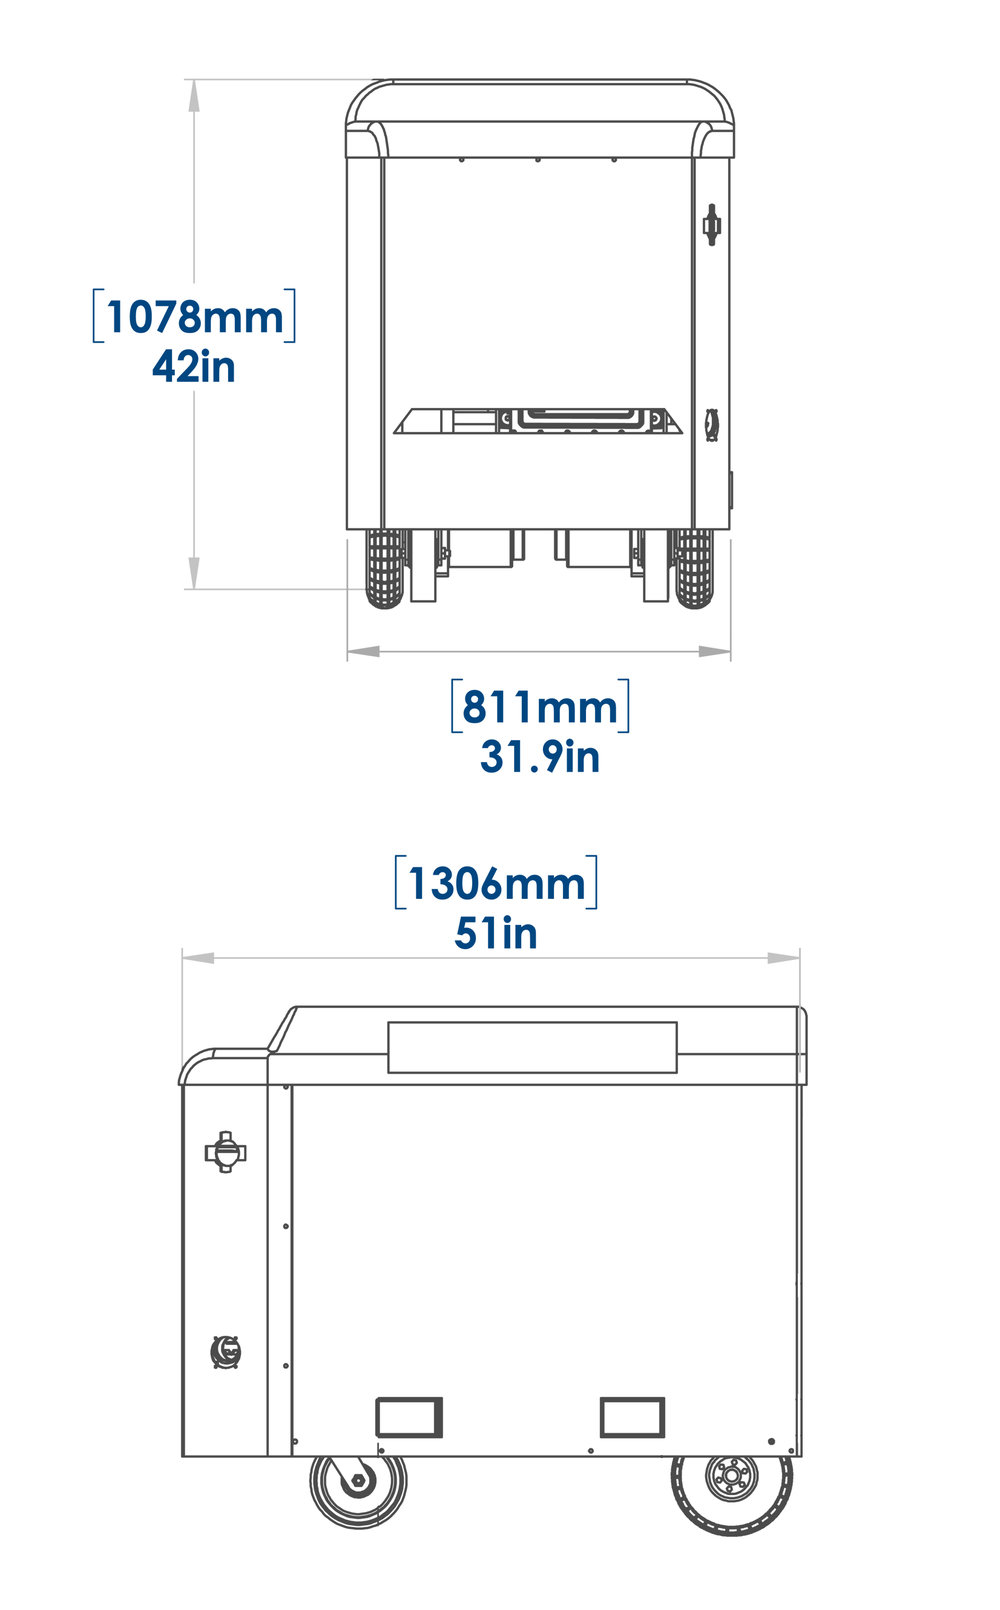 Mobi Charger DCF drawing with measurements